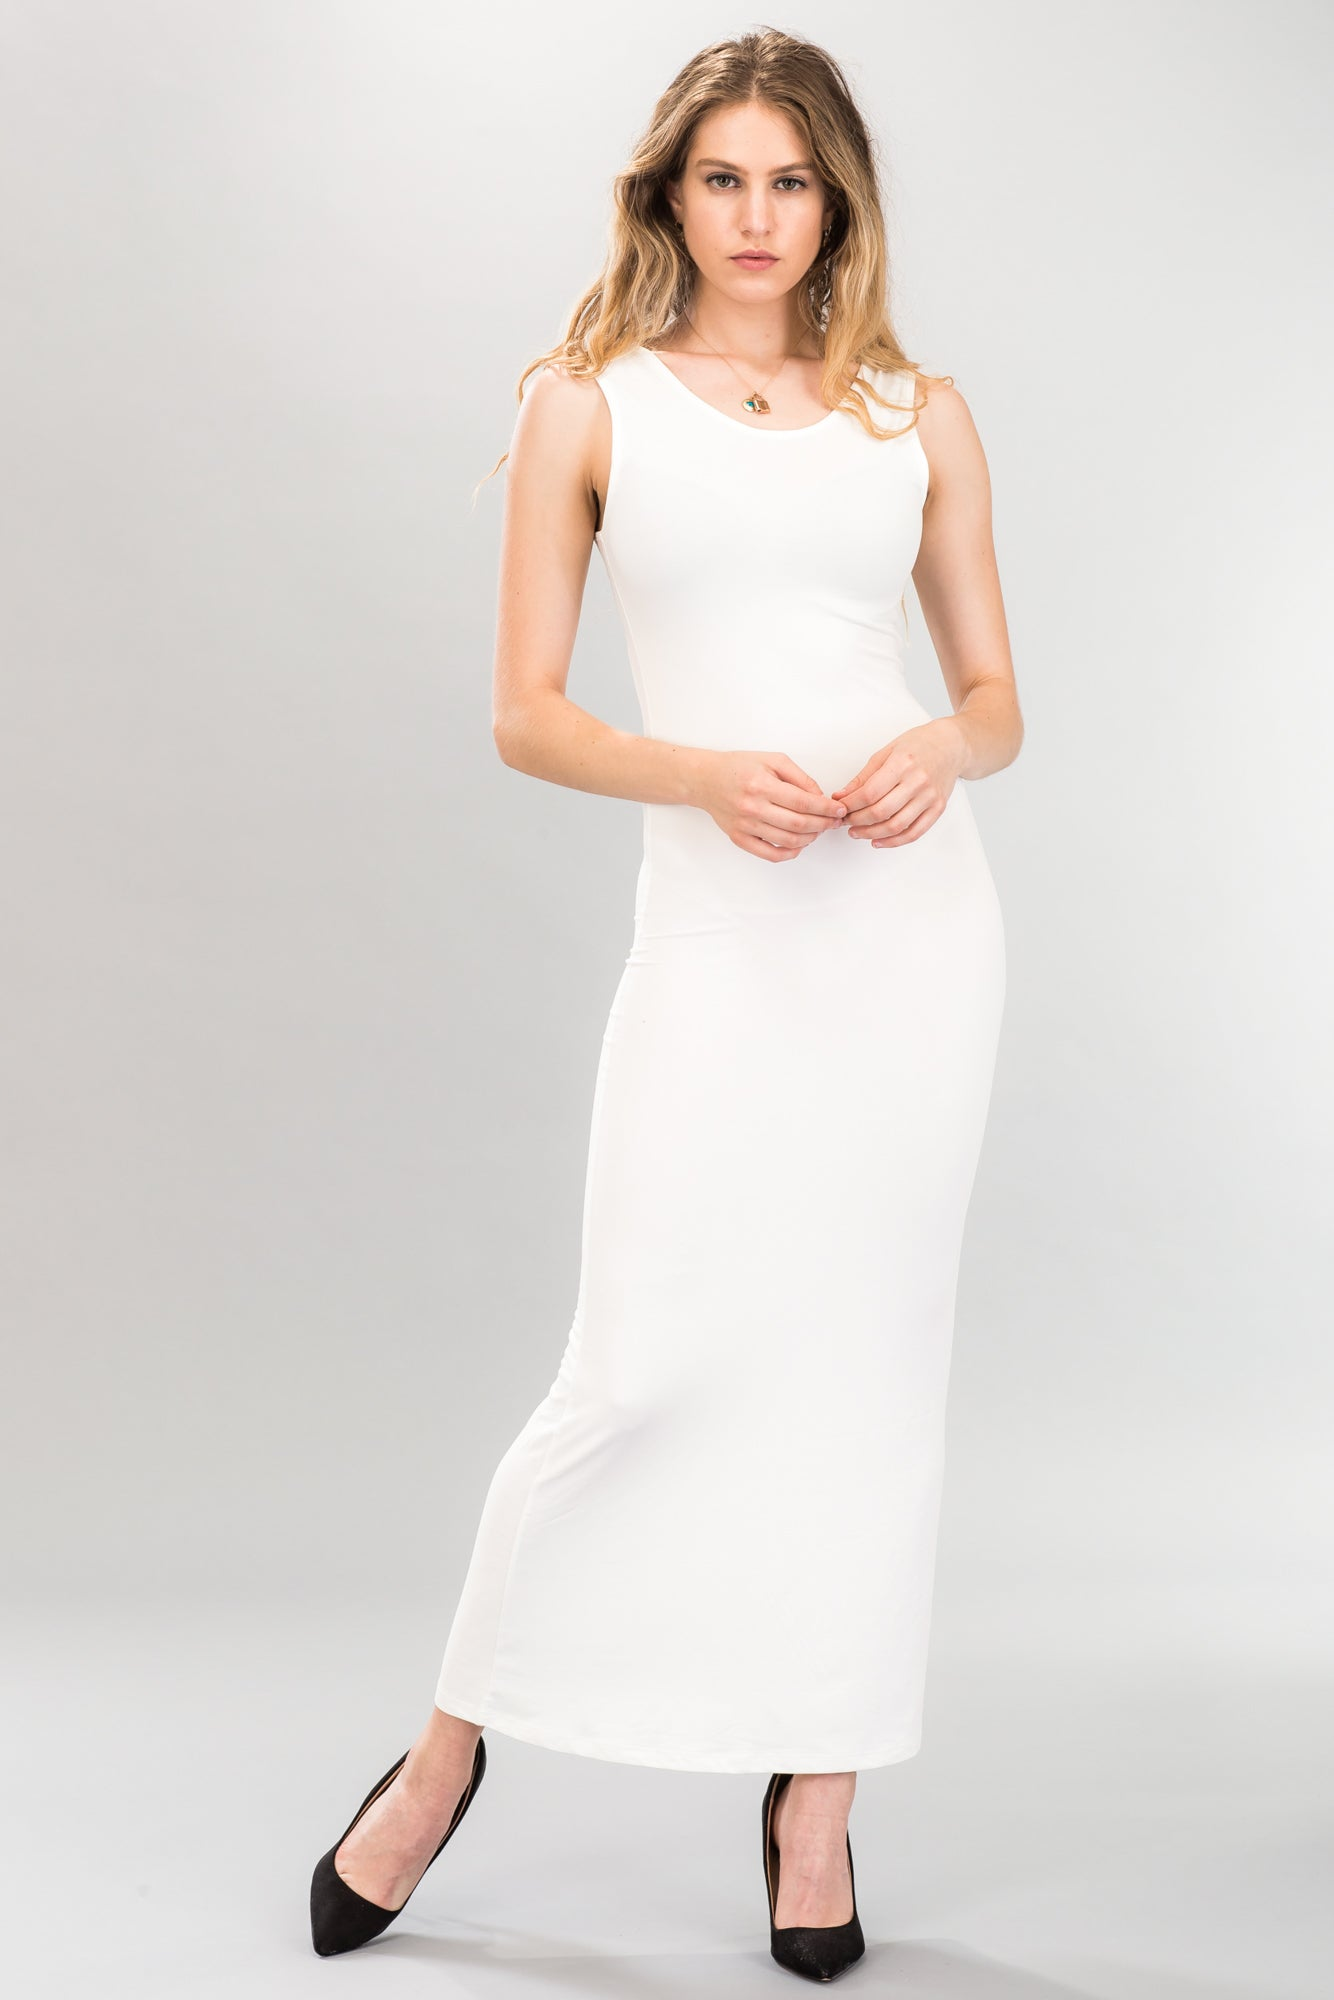 Lace-up Back Maxi Dress - BD2245 - Capella Apparel